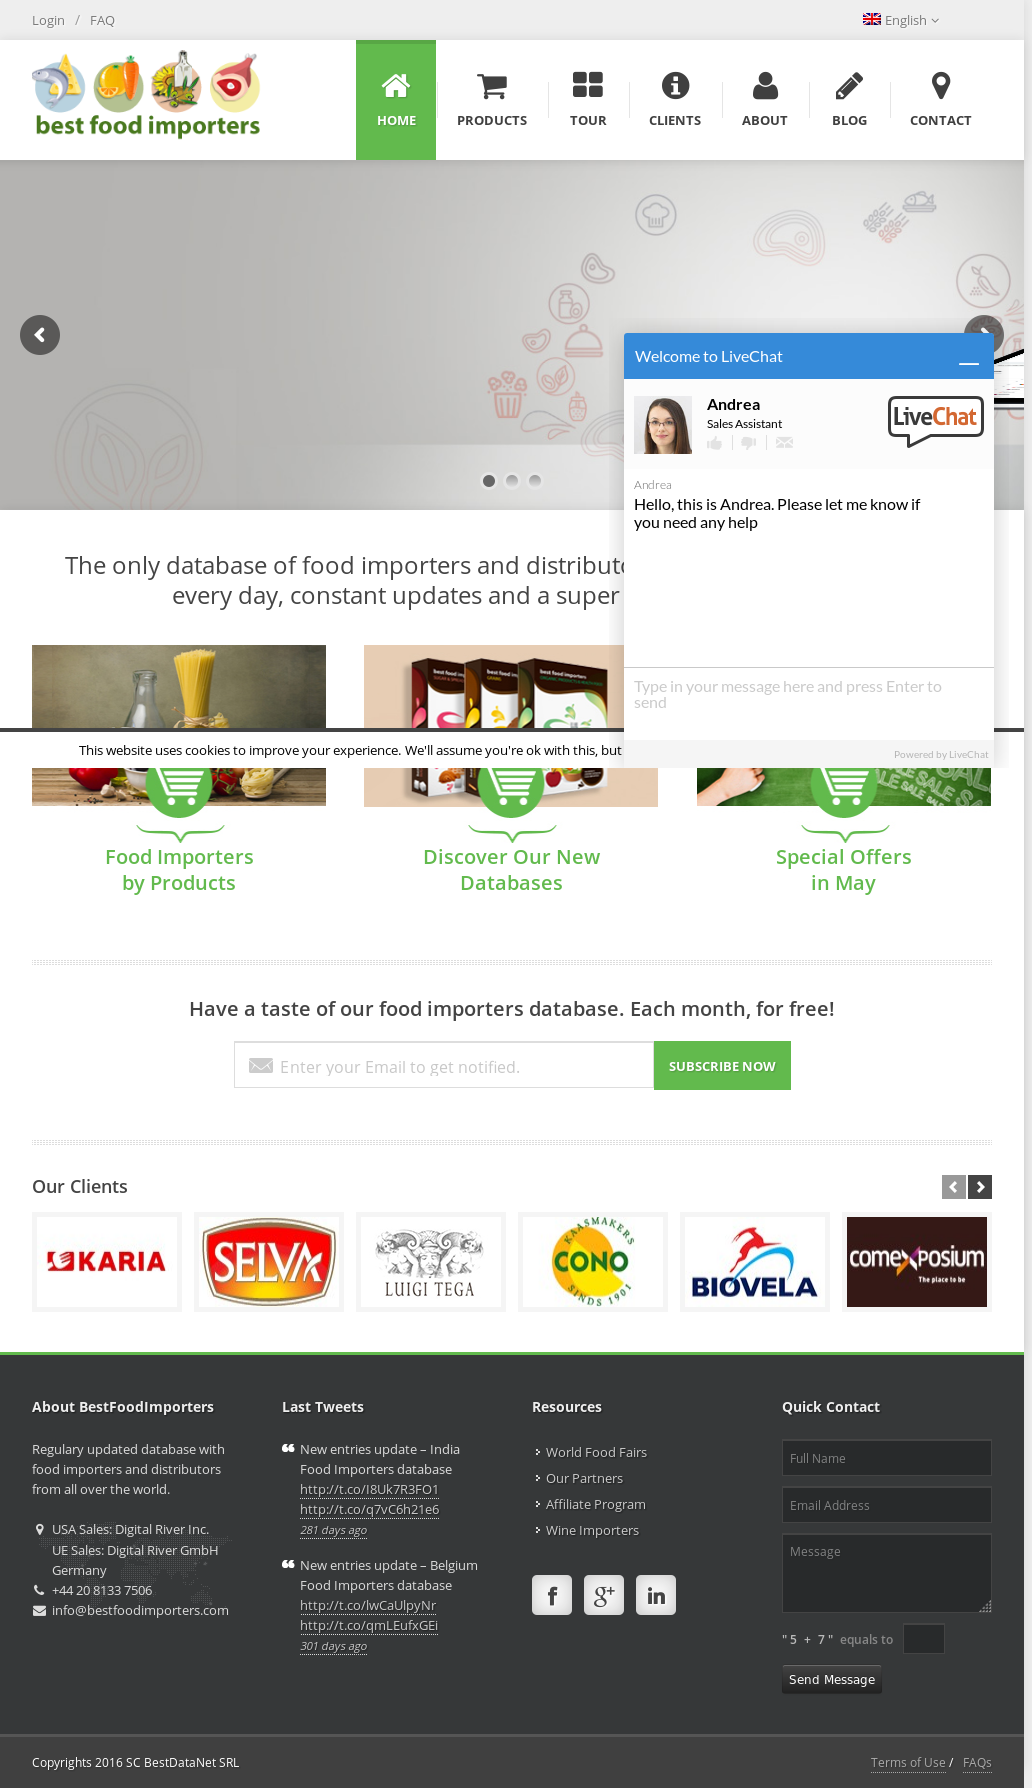 Owler Reports - Bestfoodimporters Blog Germany Food Importers